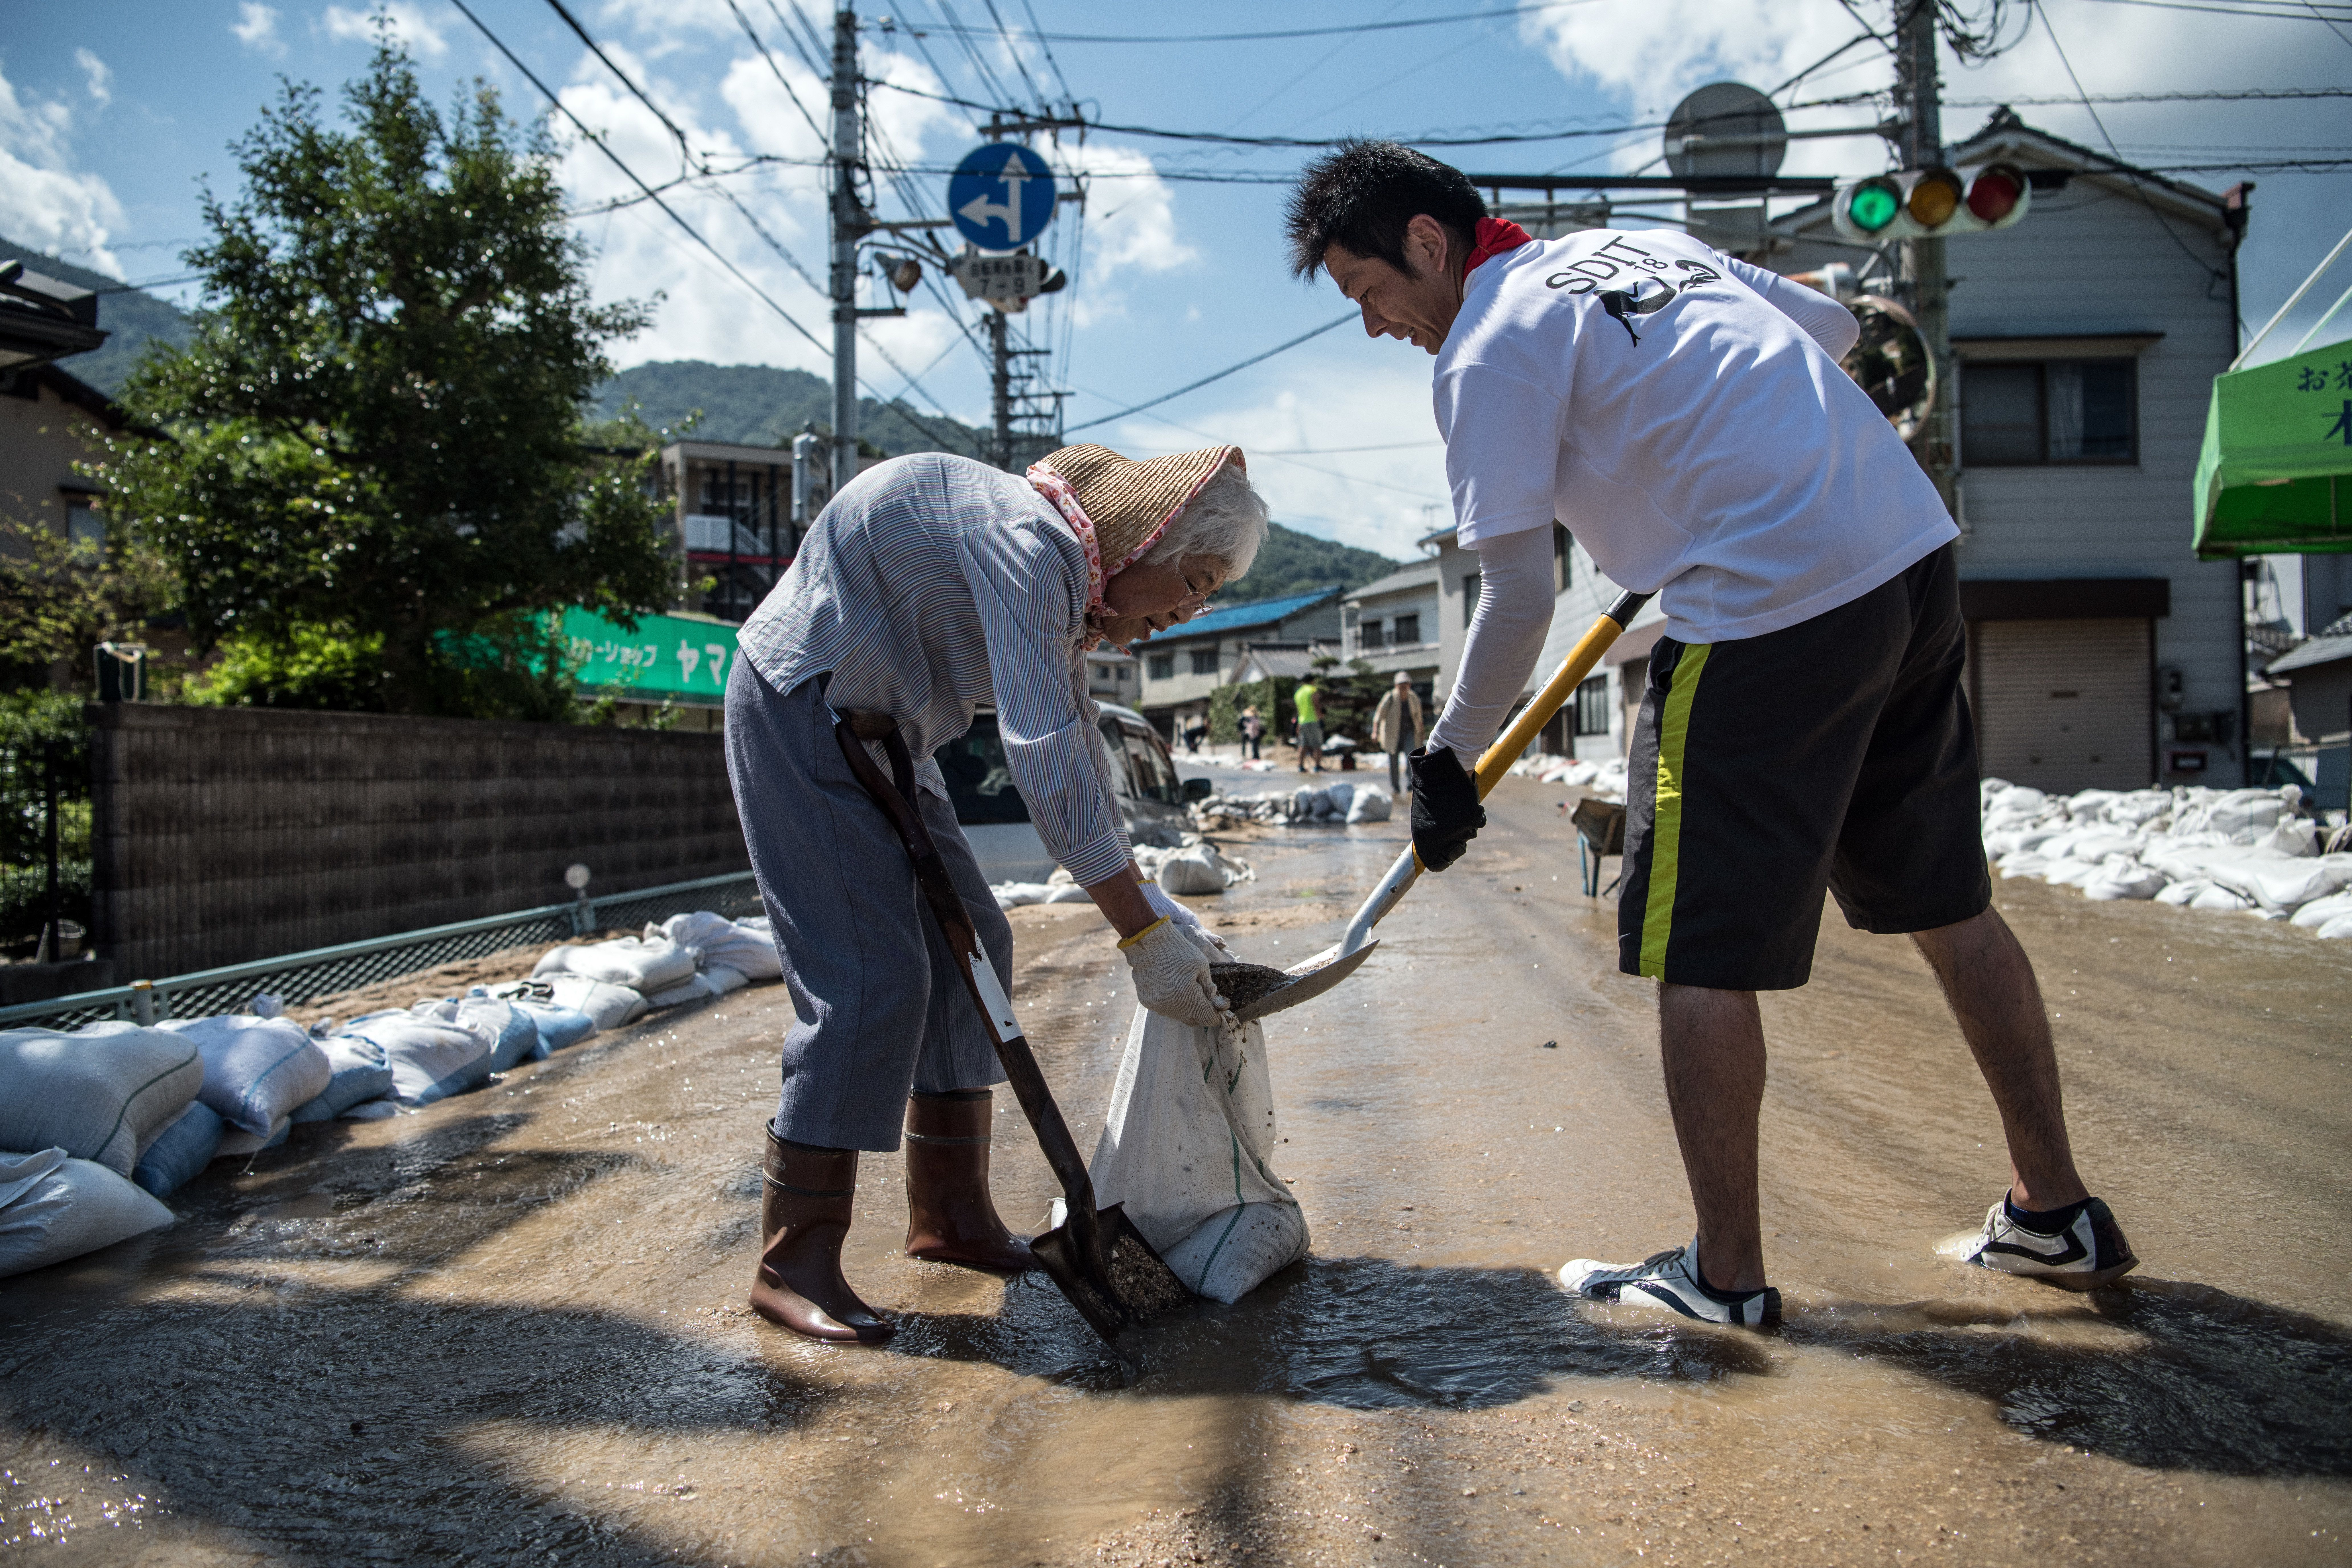 HIROSHIMA, JAPAN - JULY 10: An elderly lady helps clear a road following a landslide, on July 10, 2018 in Yanohigashi near Hiroshima, Japan. Over 112 people have died and 78 are missing following floods and landslides triggered by 'historic' levels of heavy rain across central and western parts of Japan while more than 73,000 rescuers are racing to find survivors as temperatures rise. Japan's Prime Minister Shinzo Abe warned on Sunday of a 'race against time' to rescue flood victims as almost 2 million people are subject to evacuation orders and tens of thousands remain without electricity and water. (Photo by Carl Court/Getty Images)